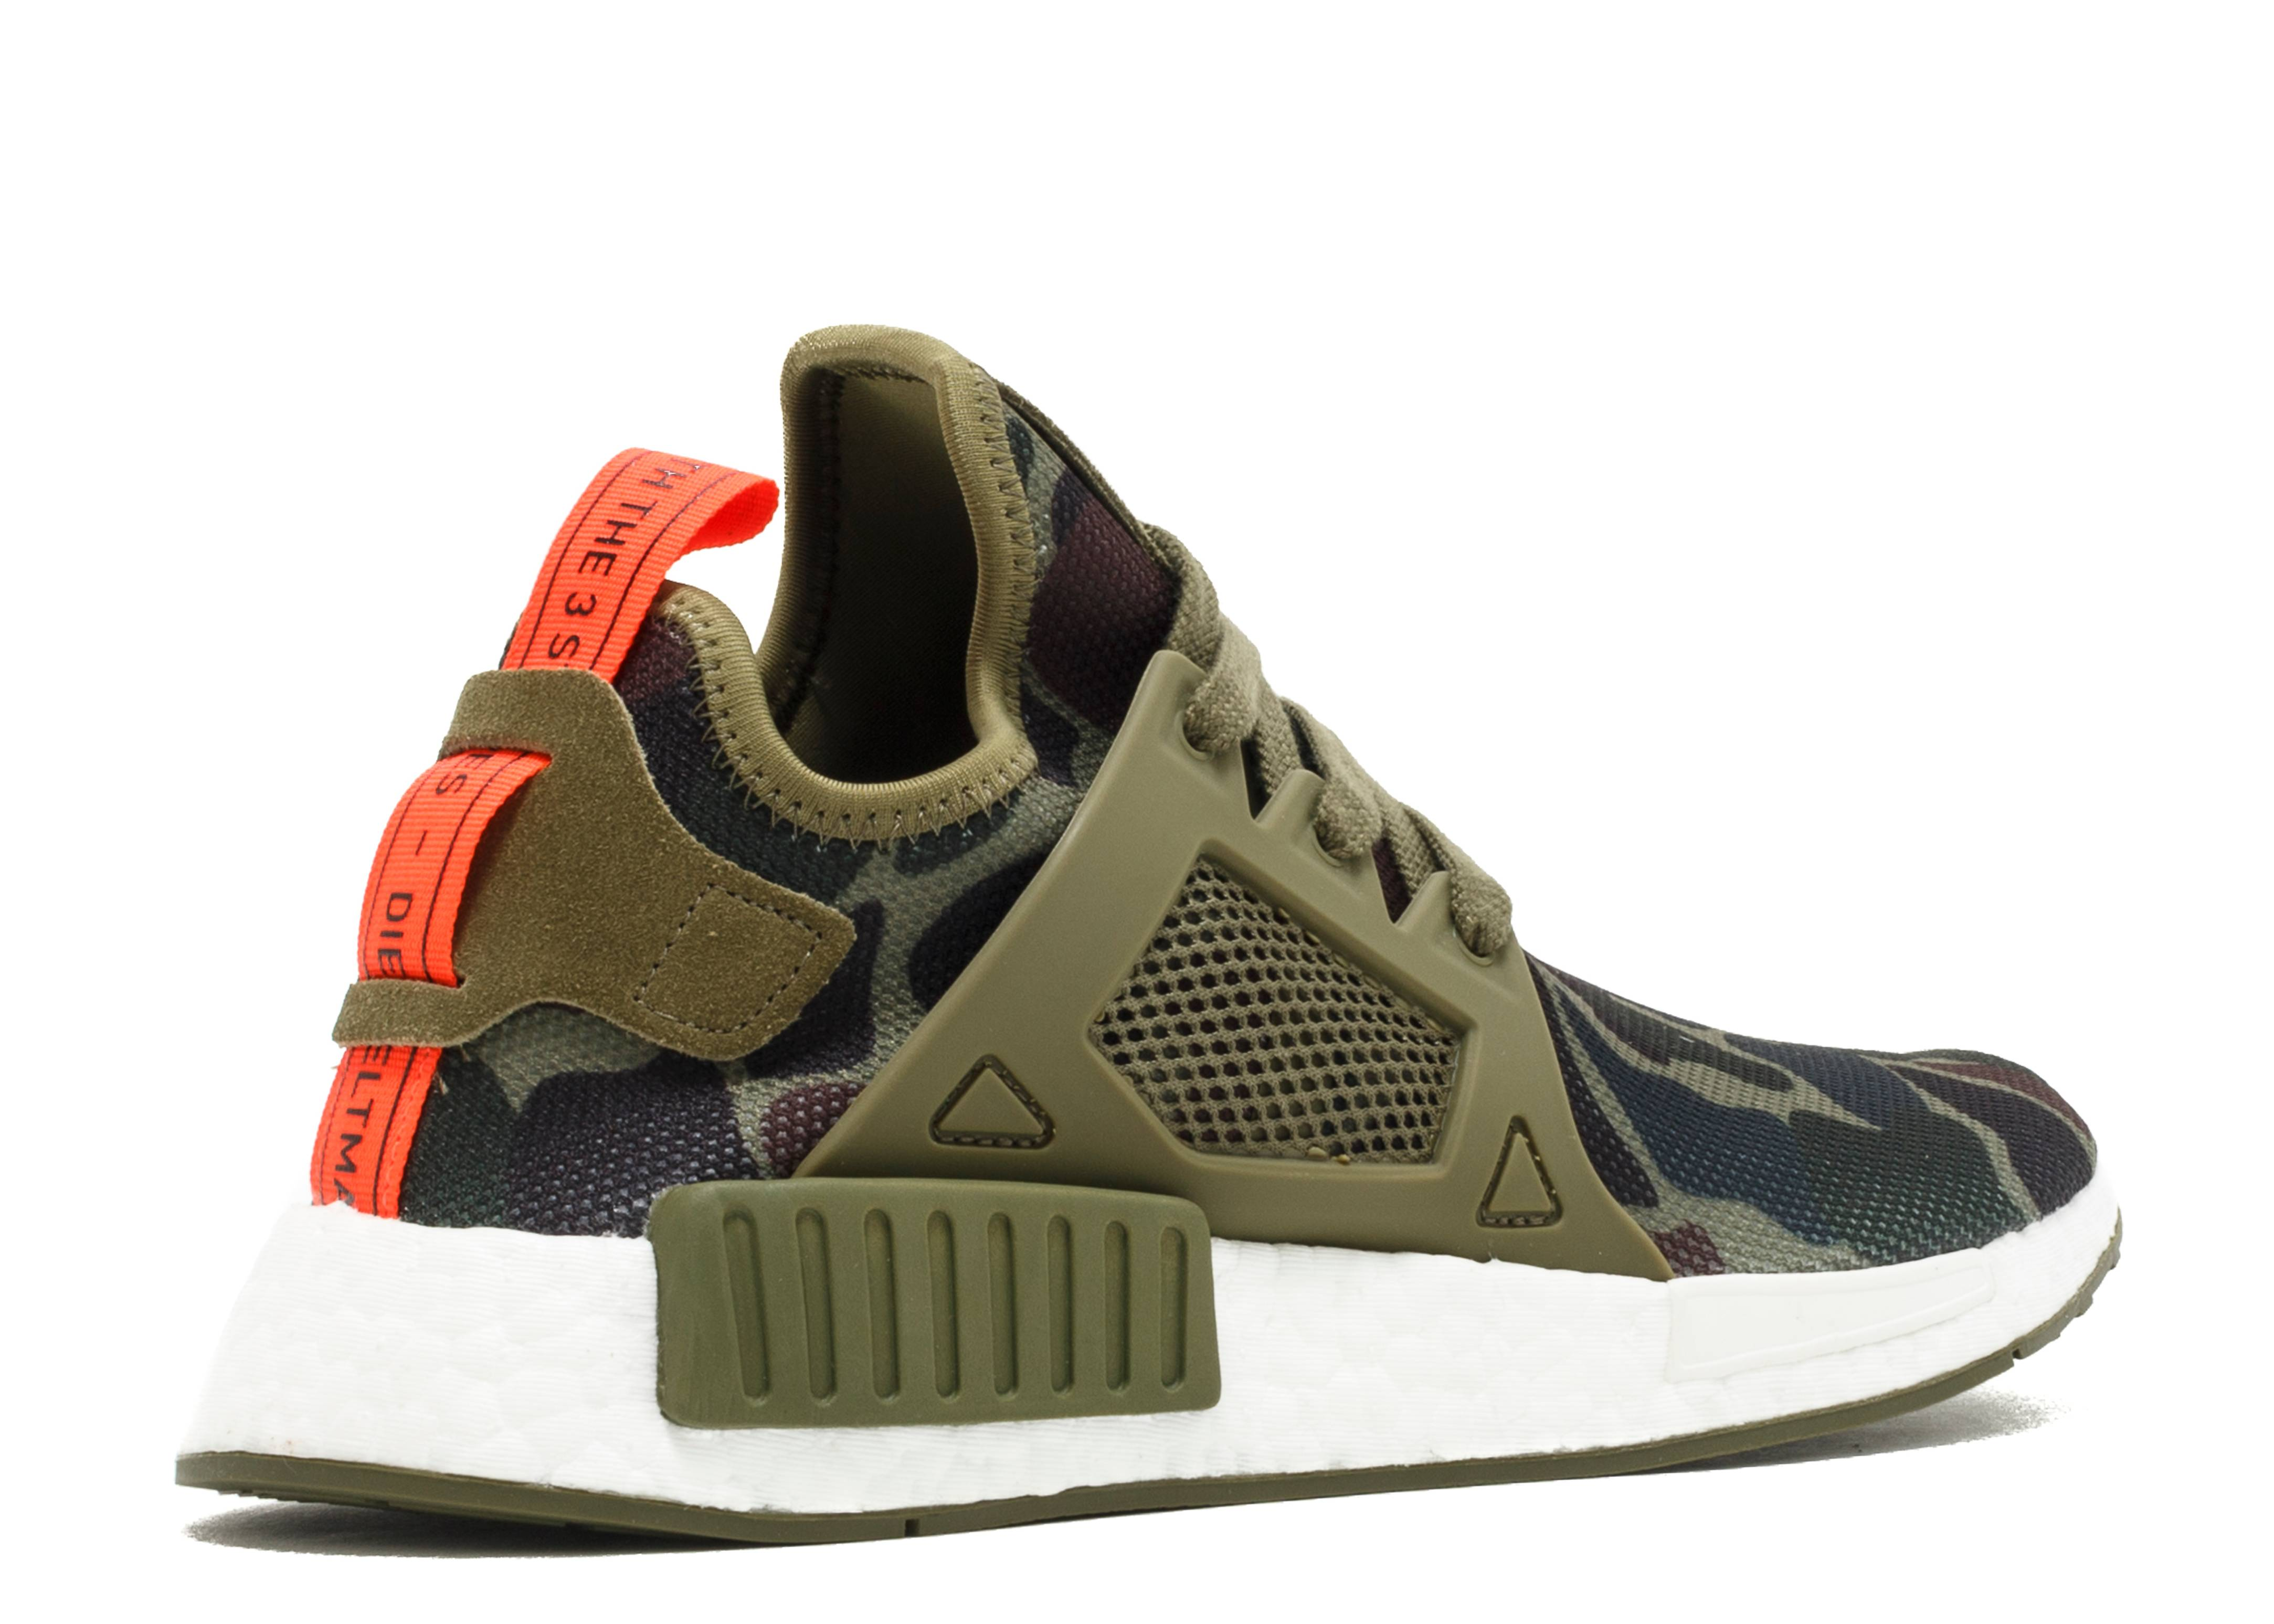 nmd xr1 quot duck camo quot adidas ba7232 olive cargo